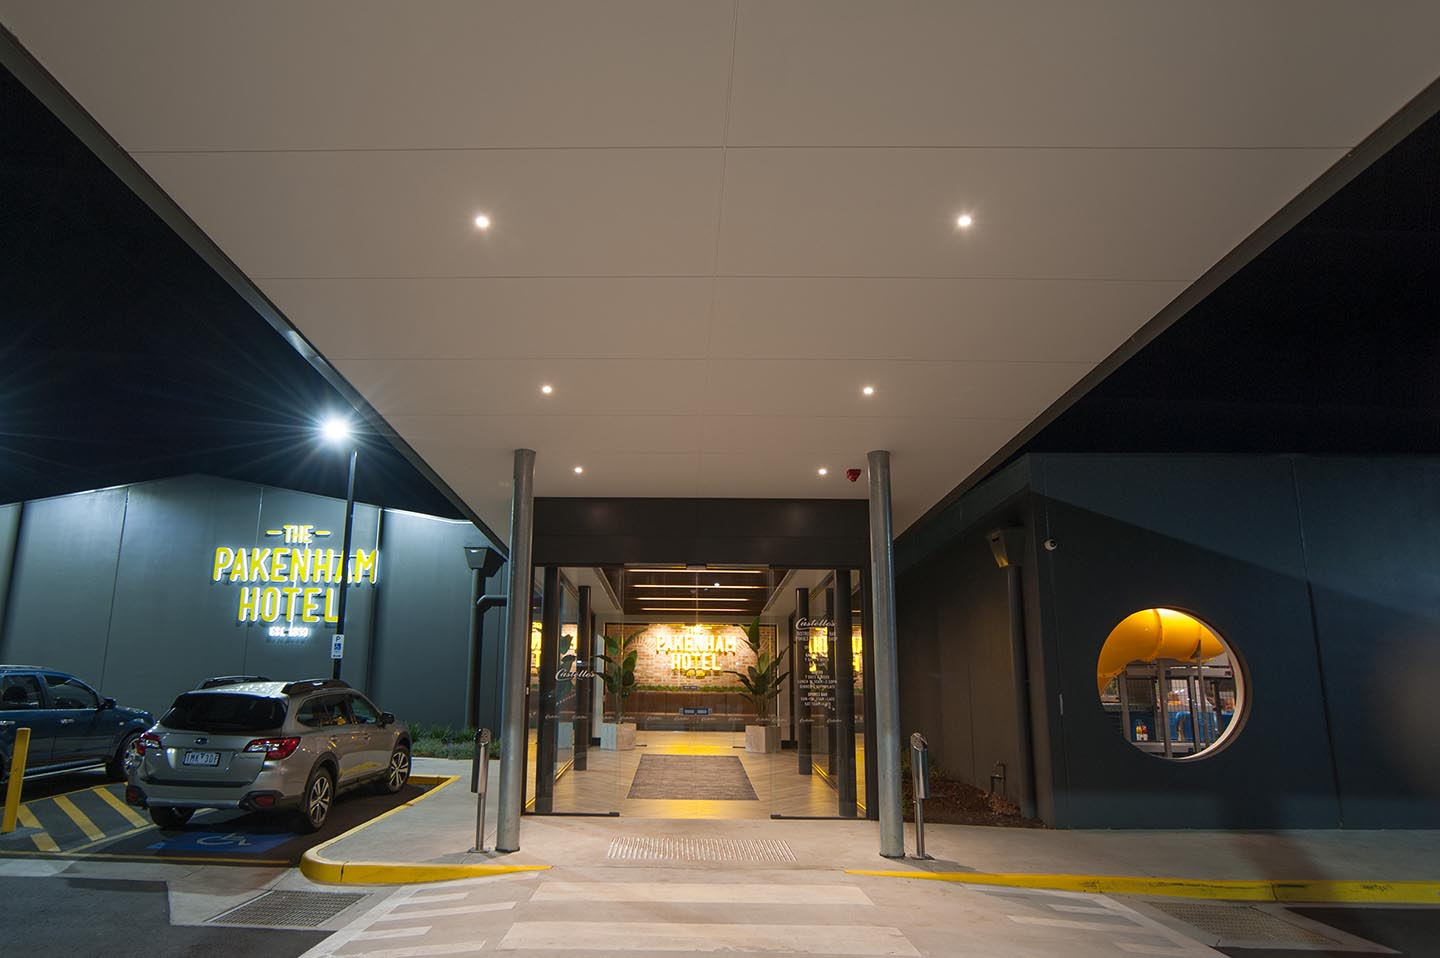 The Pakenham Hotel Macmor Electrical Contractors